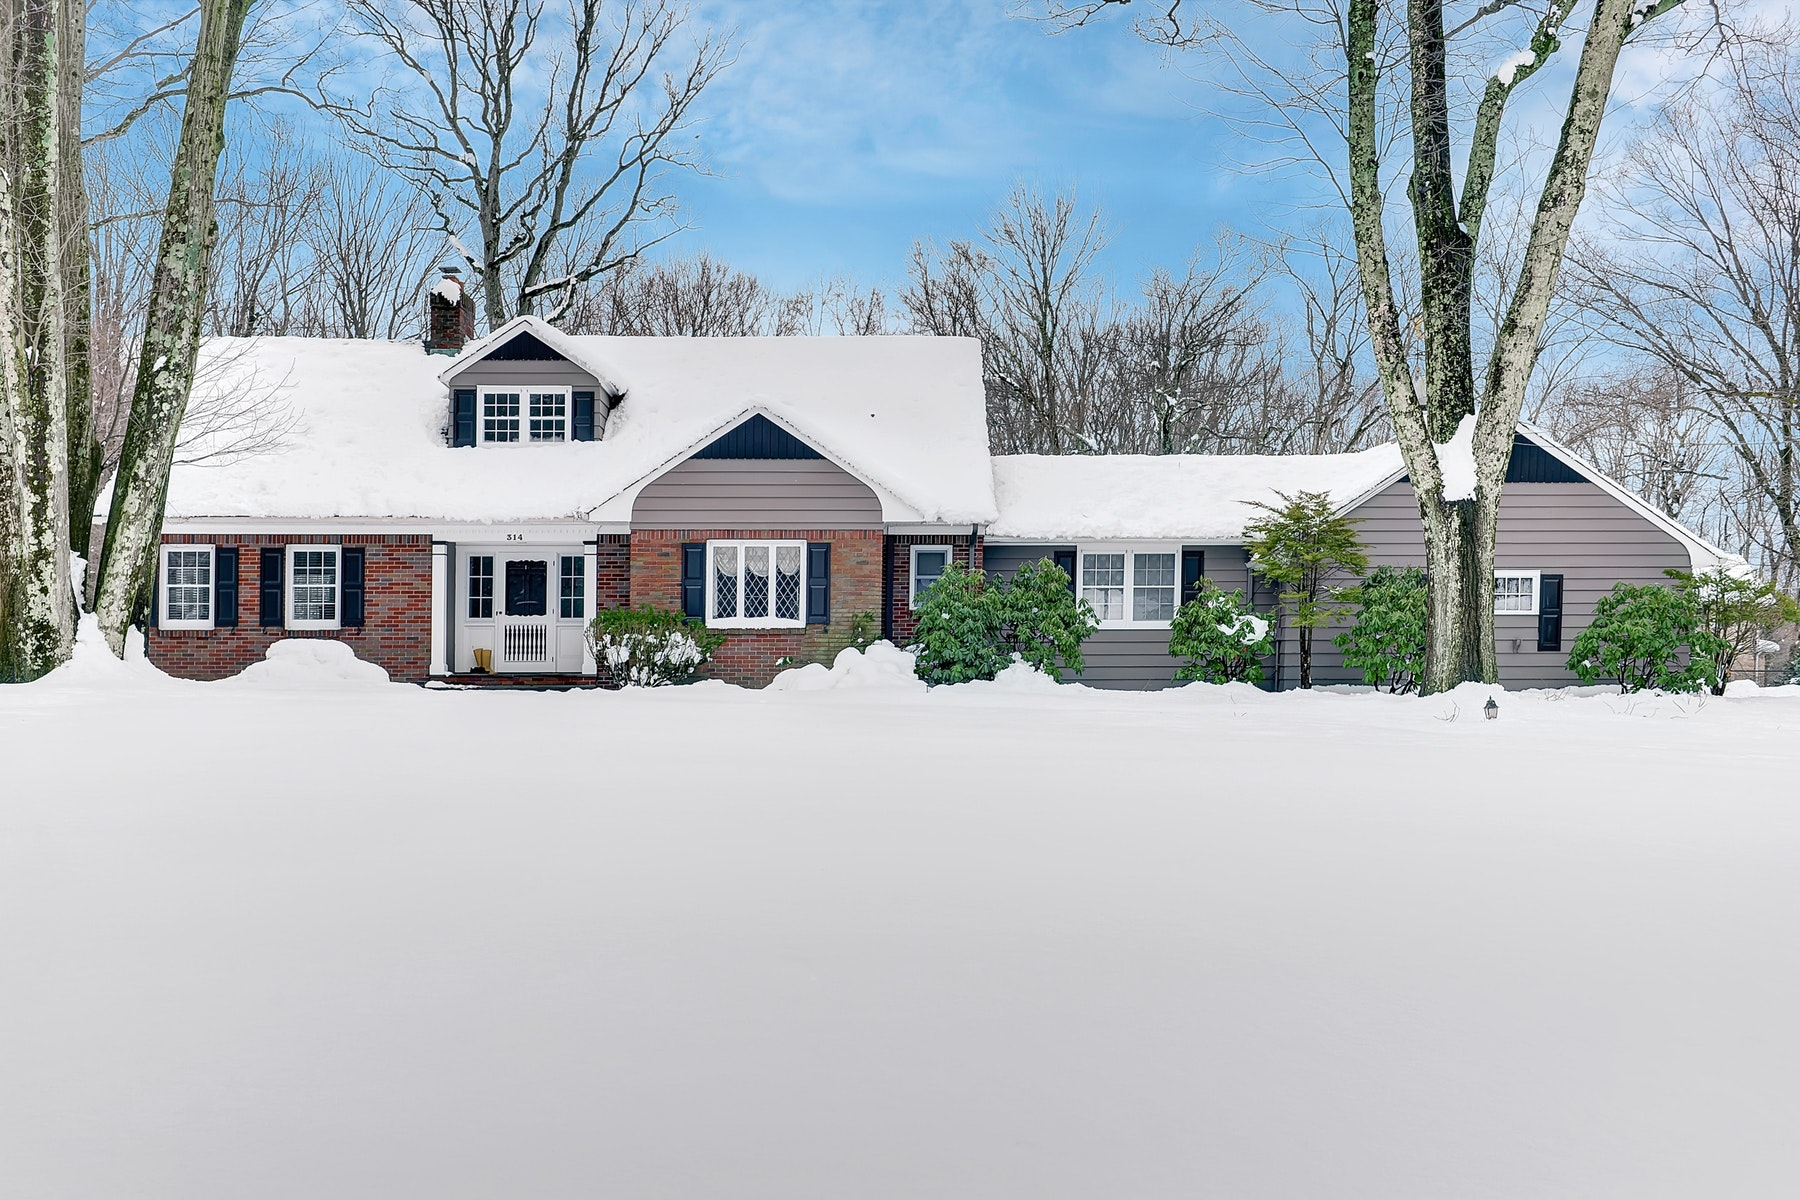 Single Family Home for Rent at Charming Cape 314 George Street, Franklin Lakes, New Jersey 07417 United States